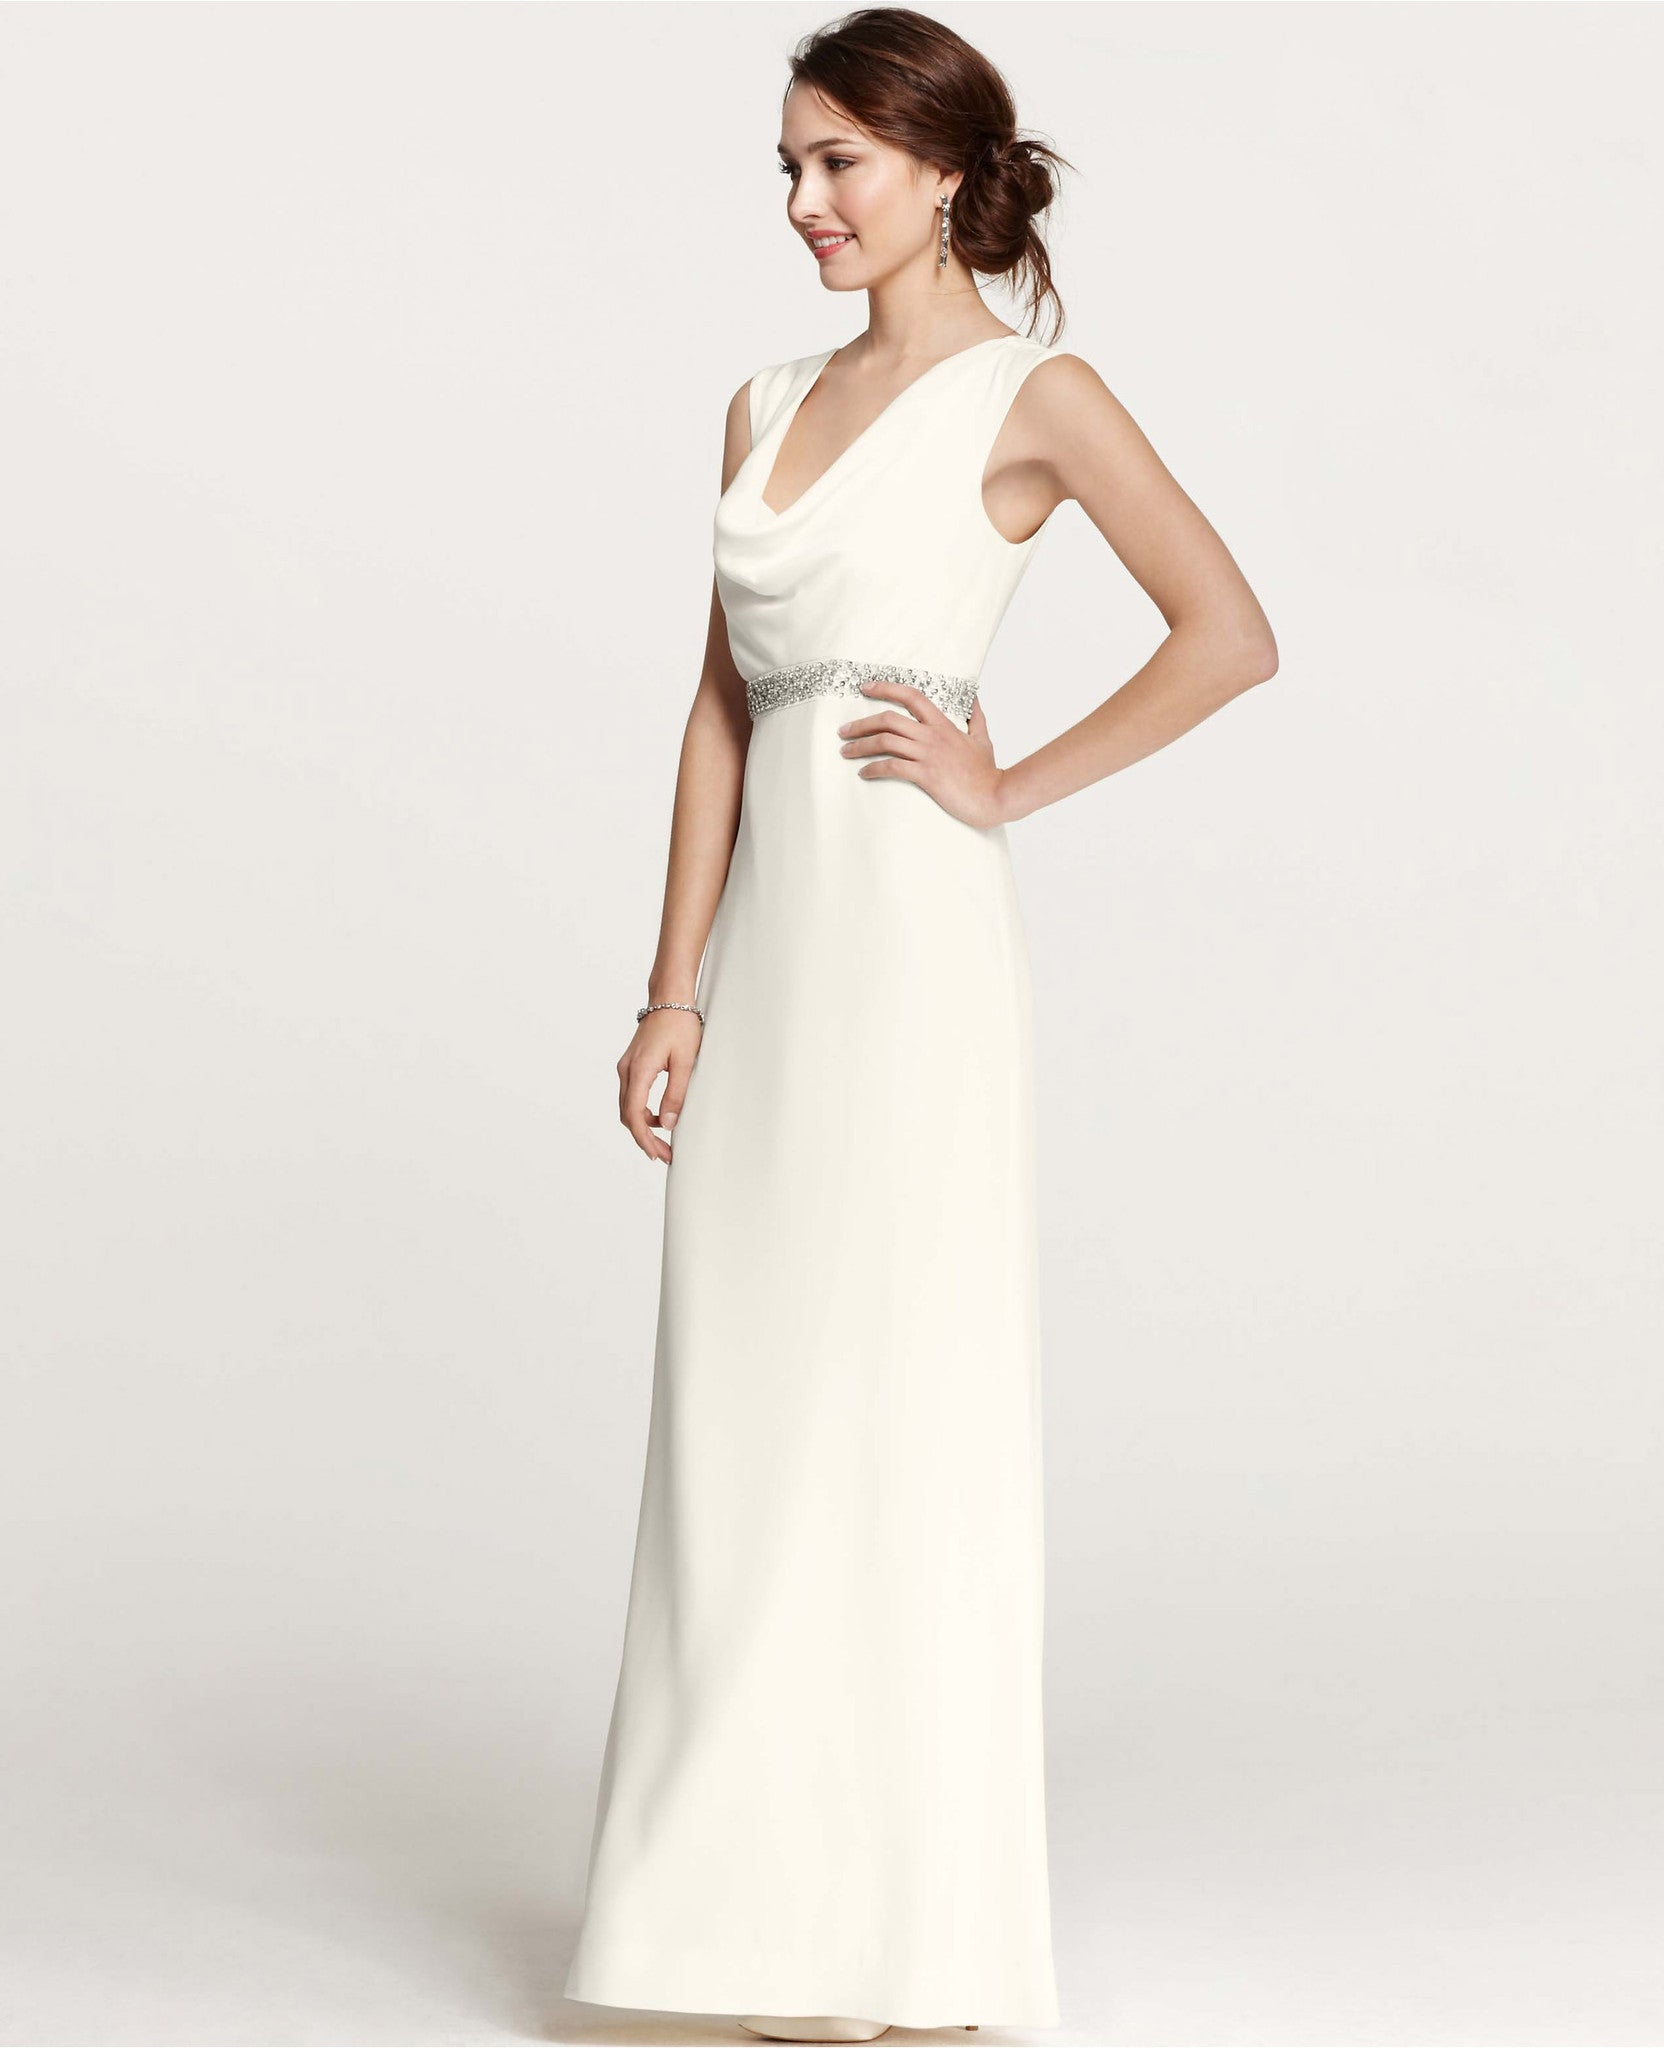 Cowl Neck Back Wedding Dresses